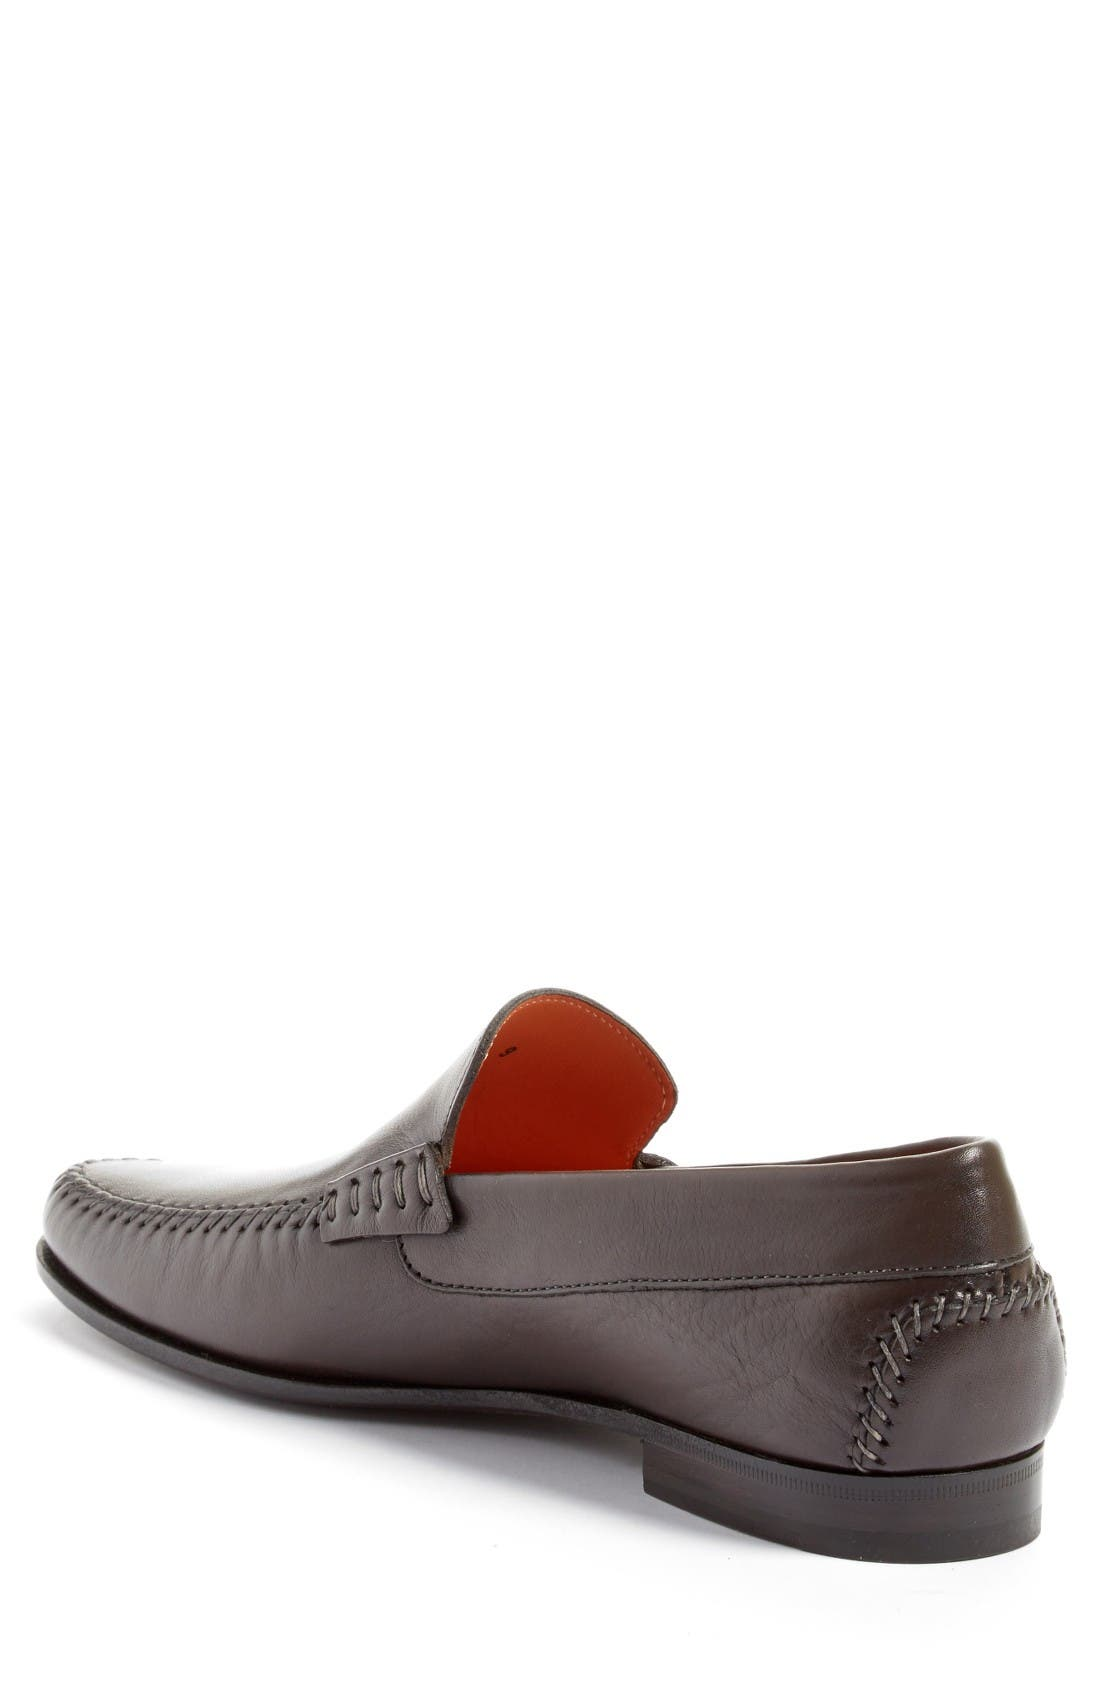 'Auburn' Venetian Loafer,                             Alternate thumbnail 4, color,